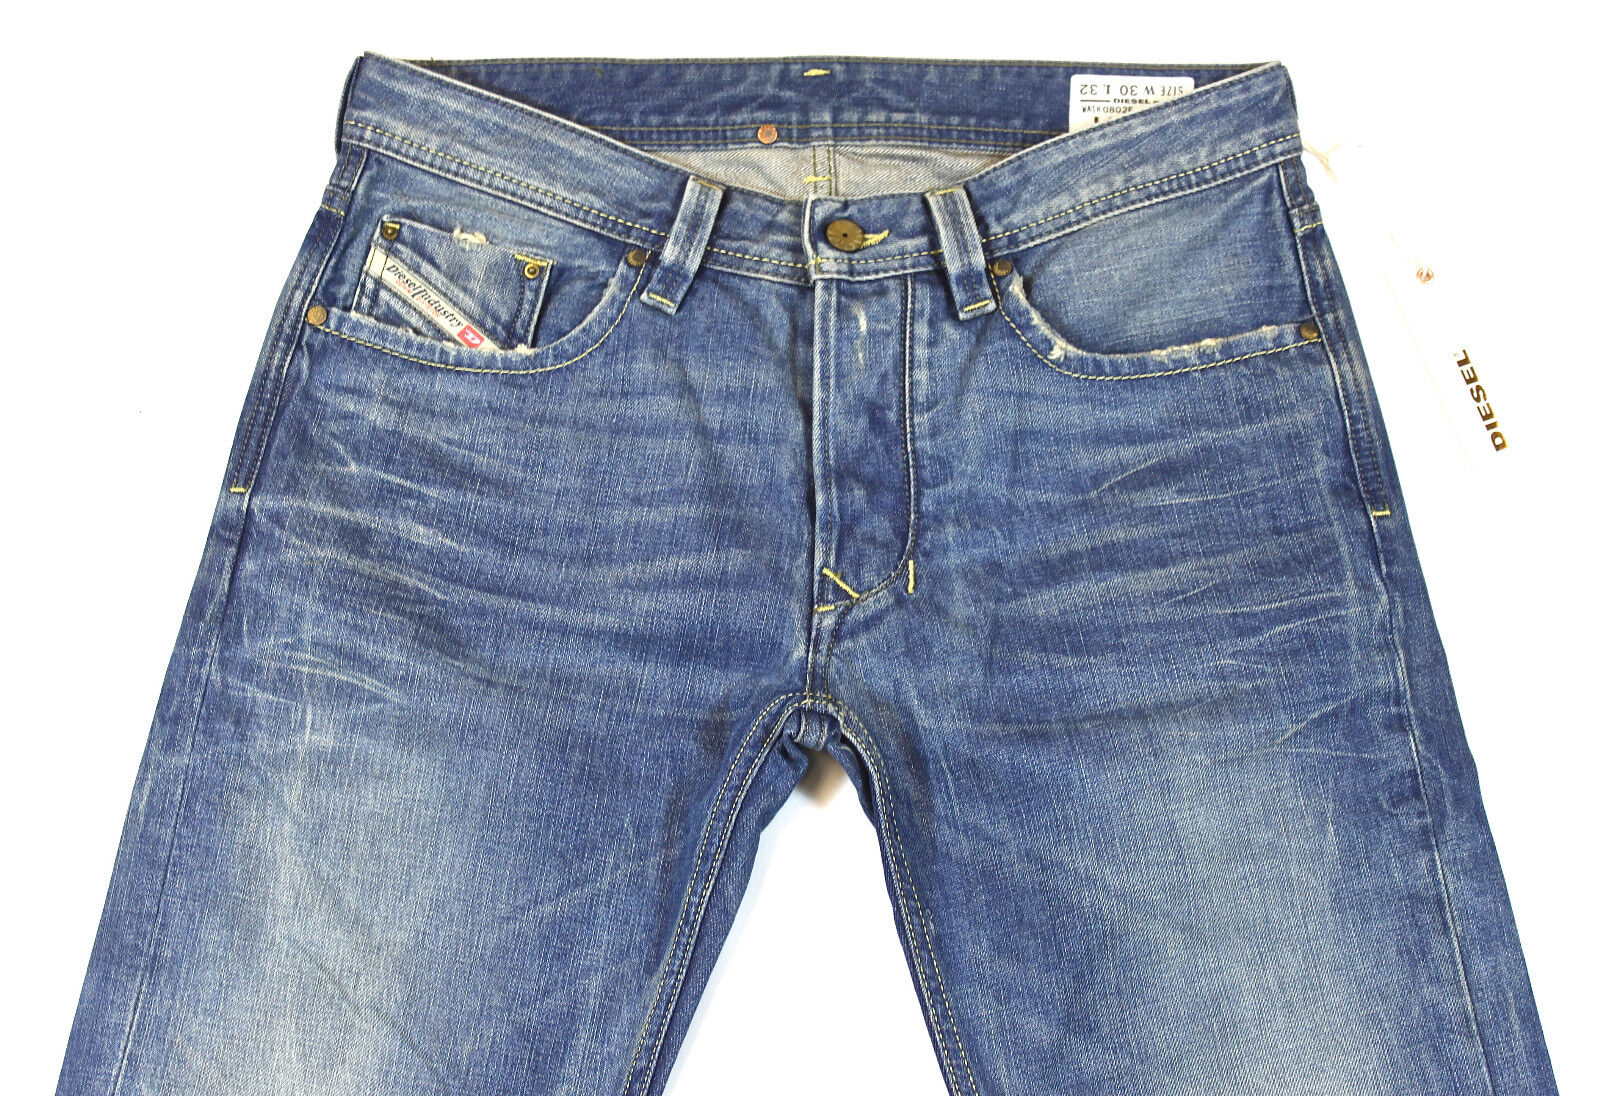 BRAND NEW DIESEL LARKEE 802E JEANS 0802E 30X32 REGULAR FIT STRAIGHT LEG